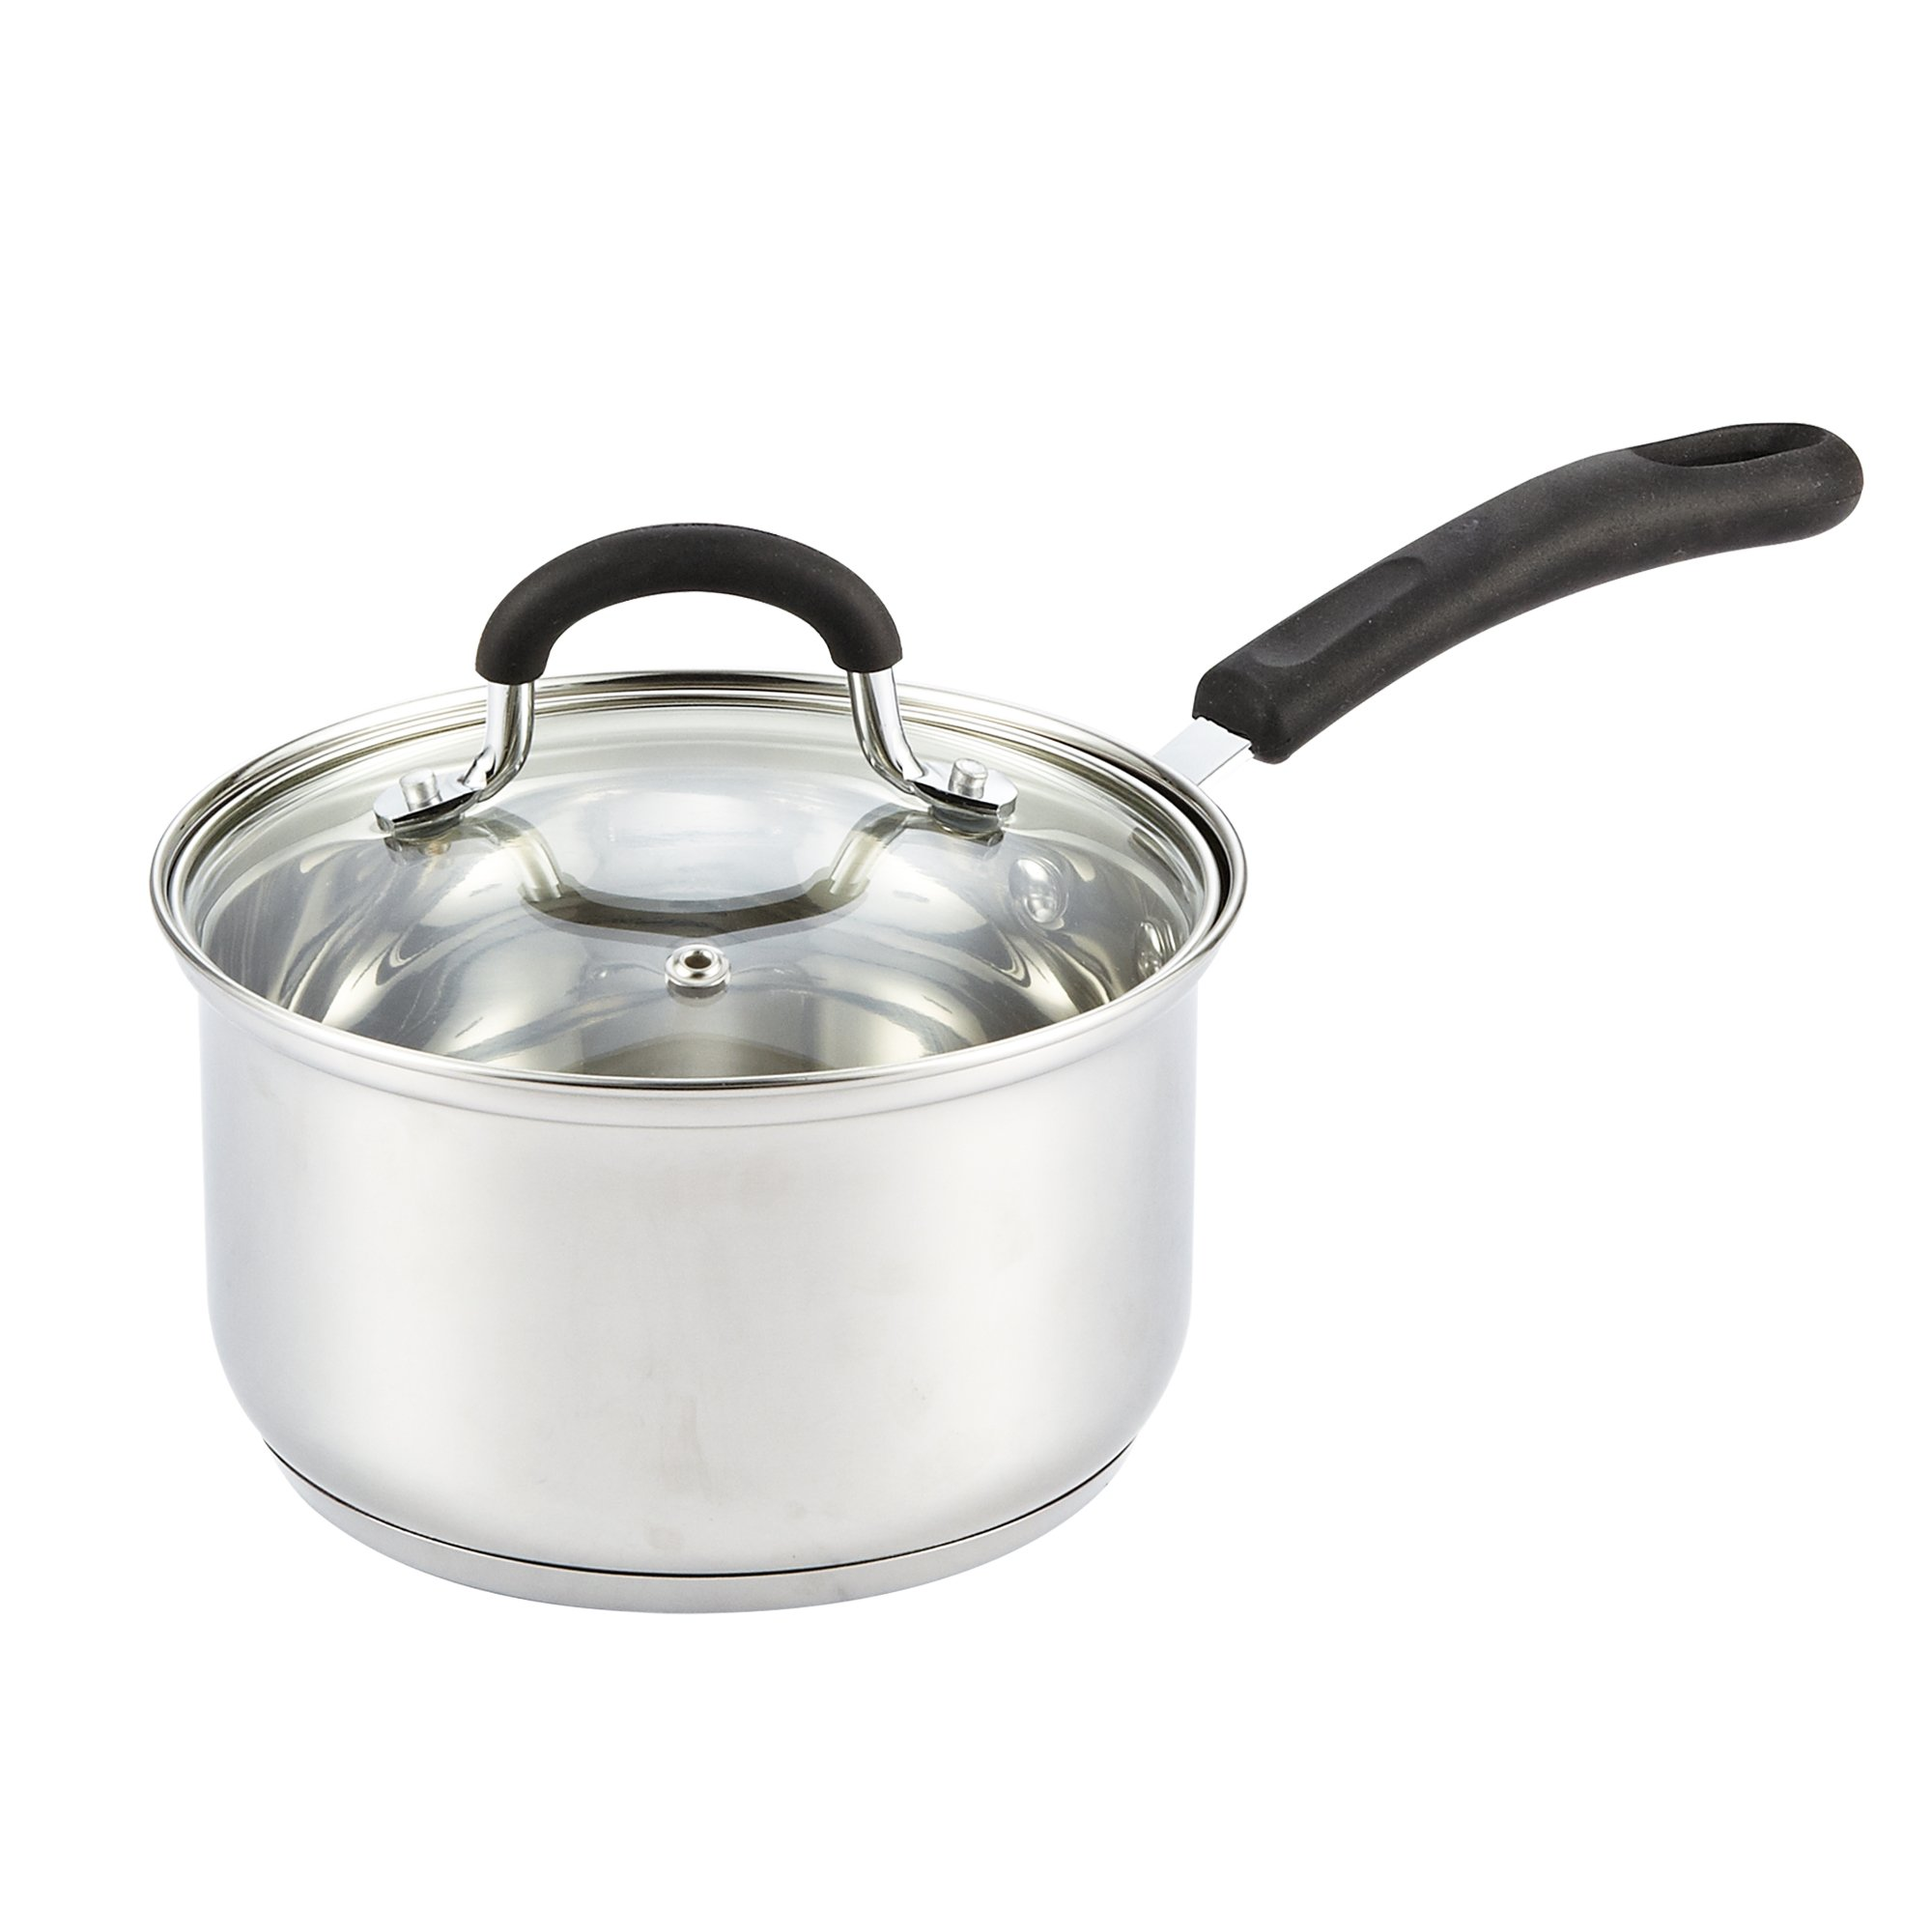 Cook N Home 02416 Silicone Handle 2-Quart Stainless Steel Saucepan by Cook N Home